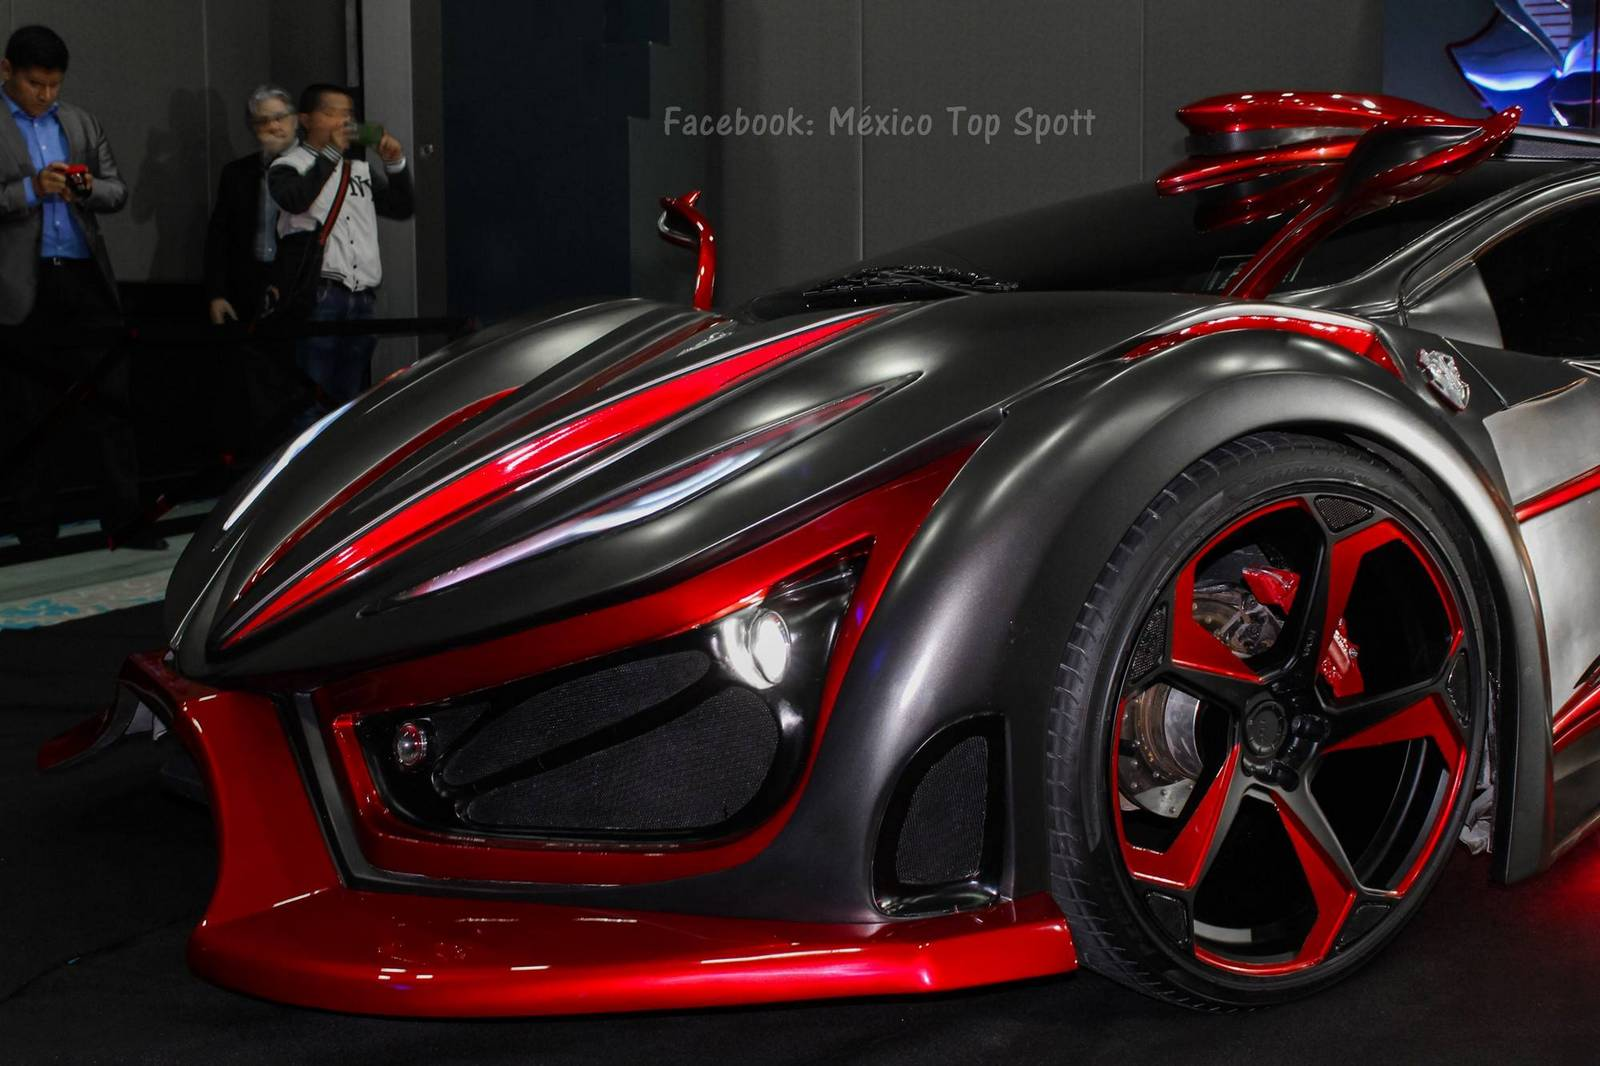 Mexico S First Hypercar The Inferno Exotic Car Isn T